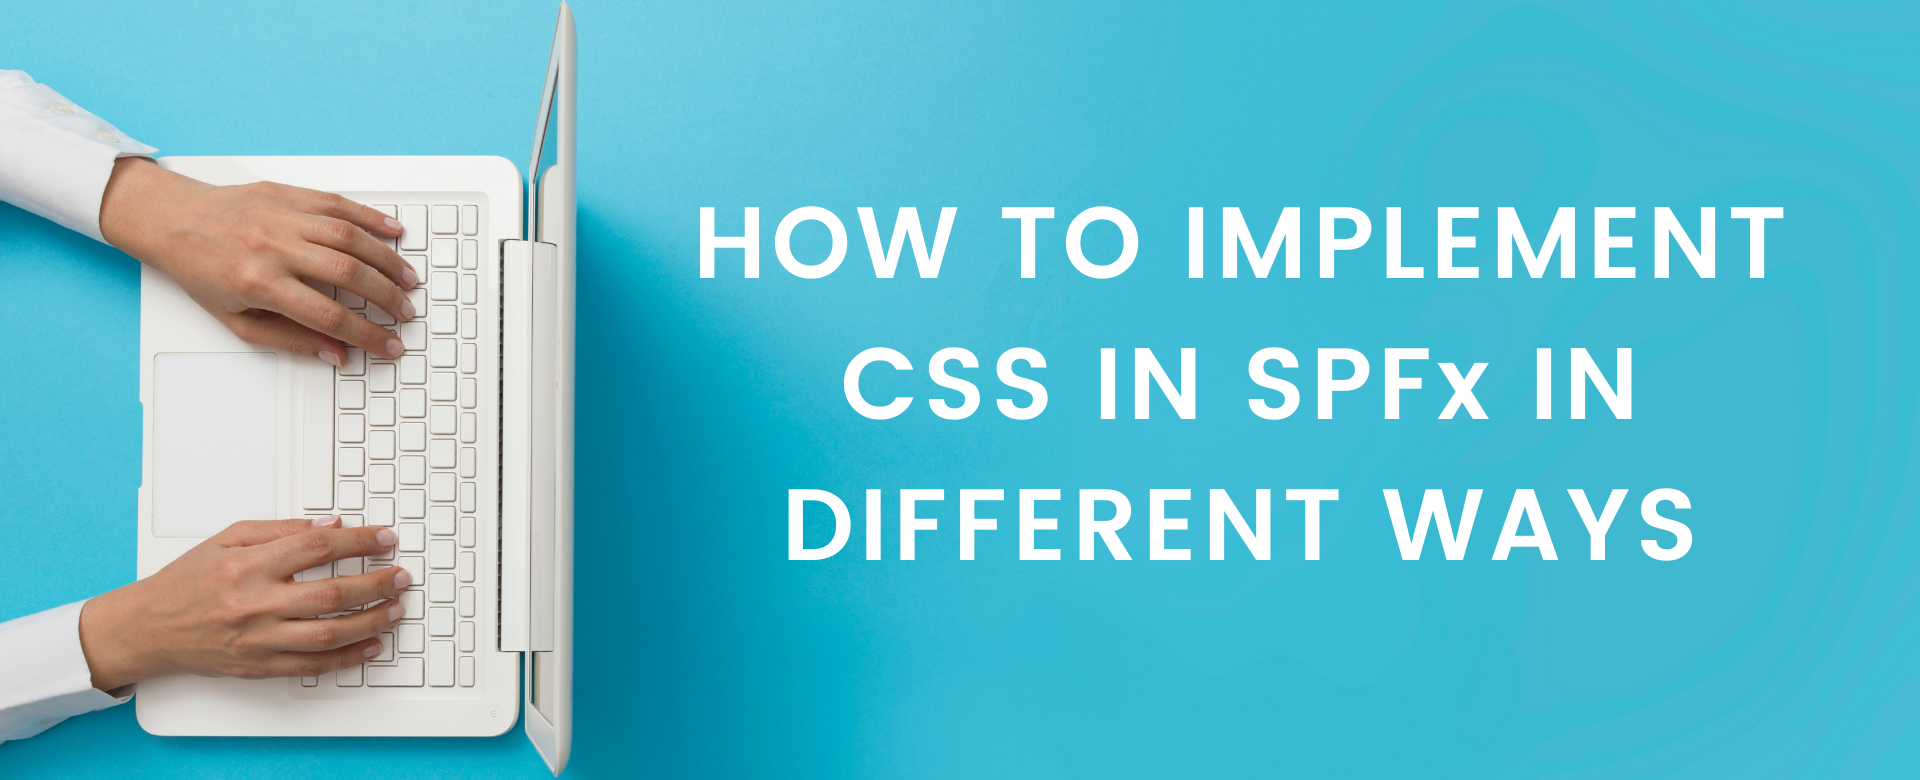 How to implement CSS in SPFx in different ways with text